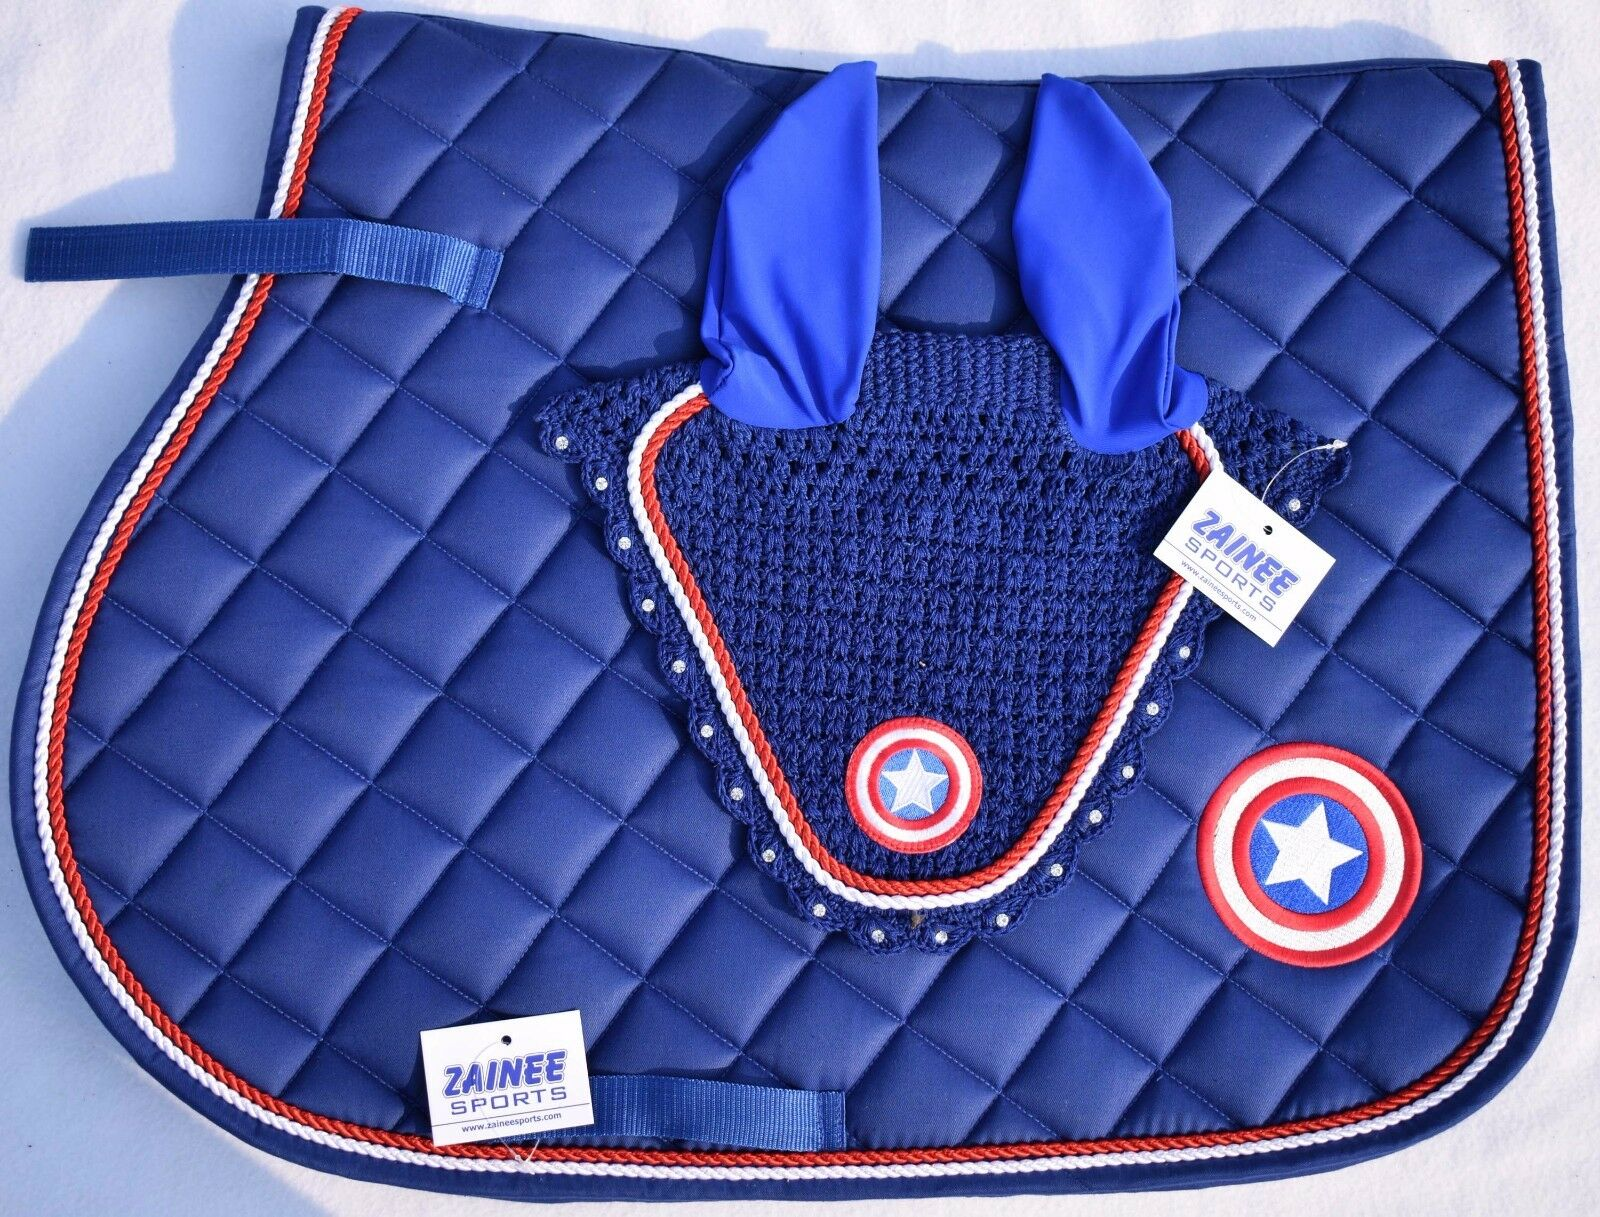 CAPTAIN AMERICA SADDLE PAD SET FLY  VEIL HORSE BONNET DIAMANTE EQUESTRIAN ZAINEE  just buy it